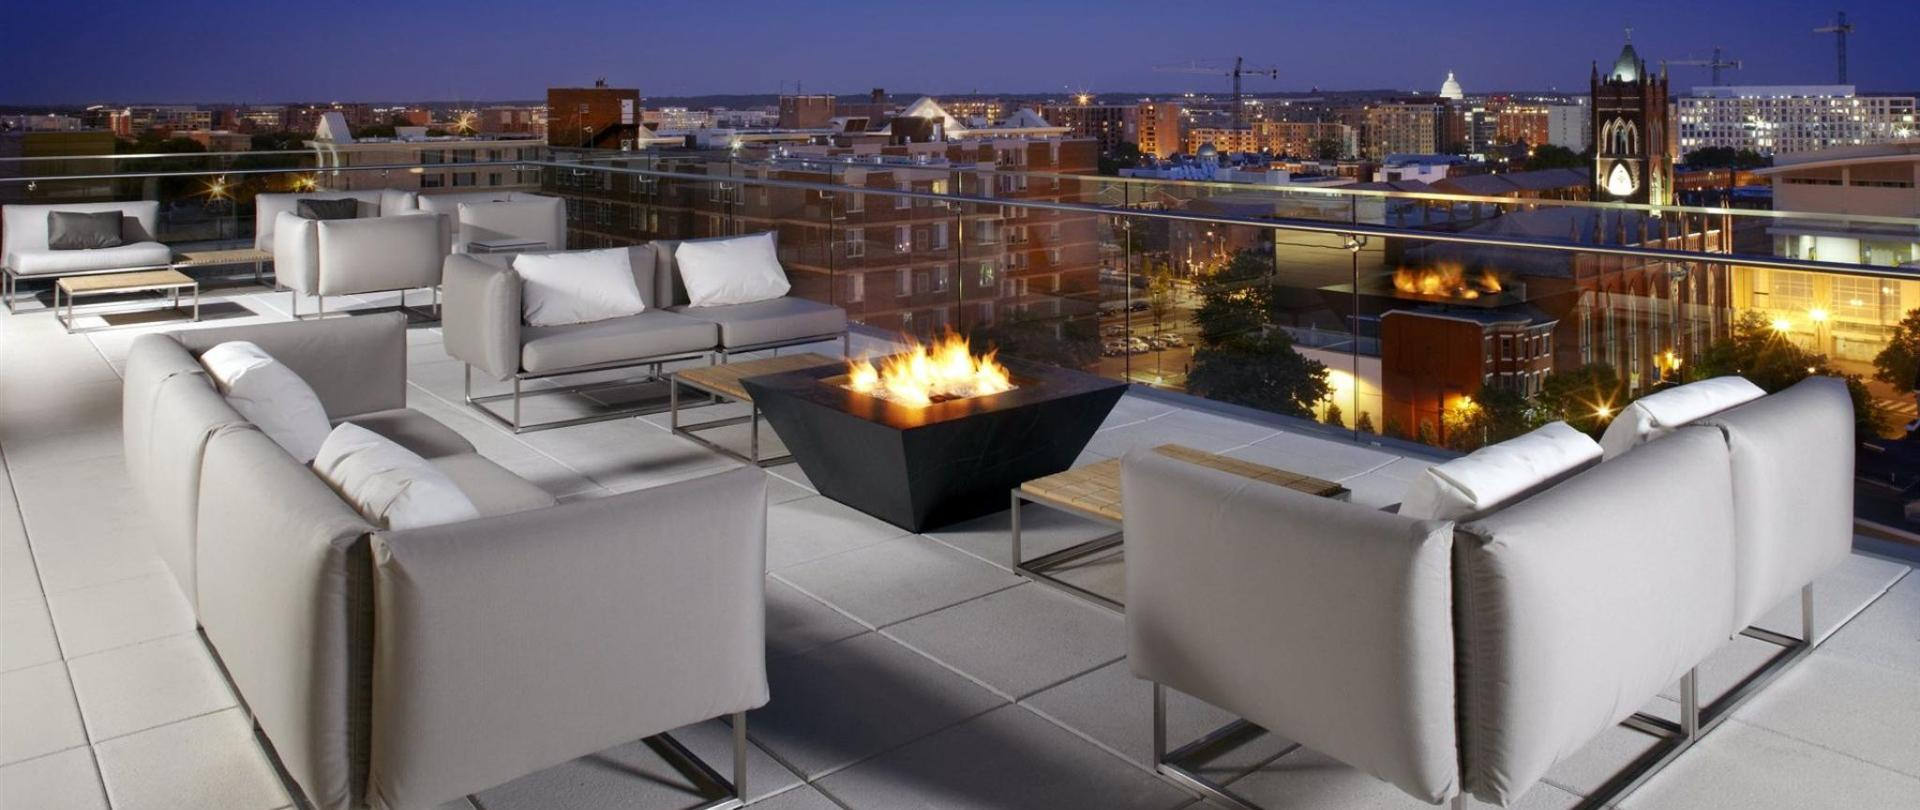 cam-dc-rooftop-patio-night-20141.jpg